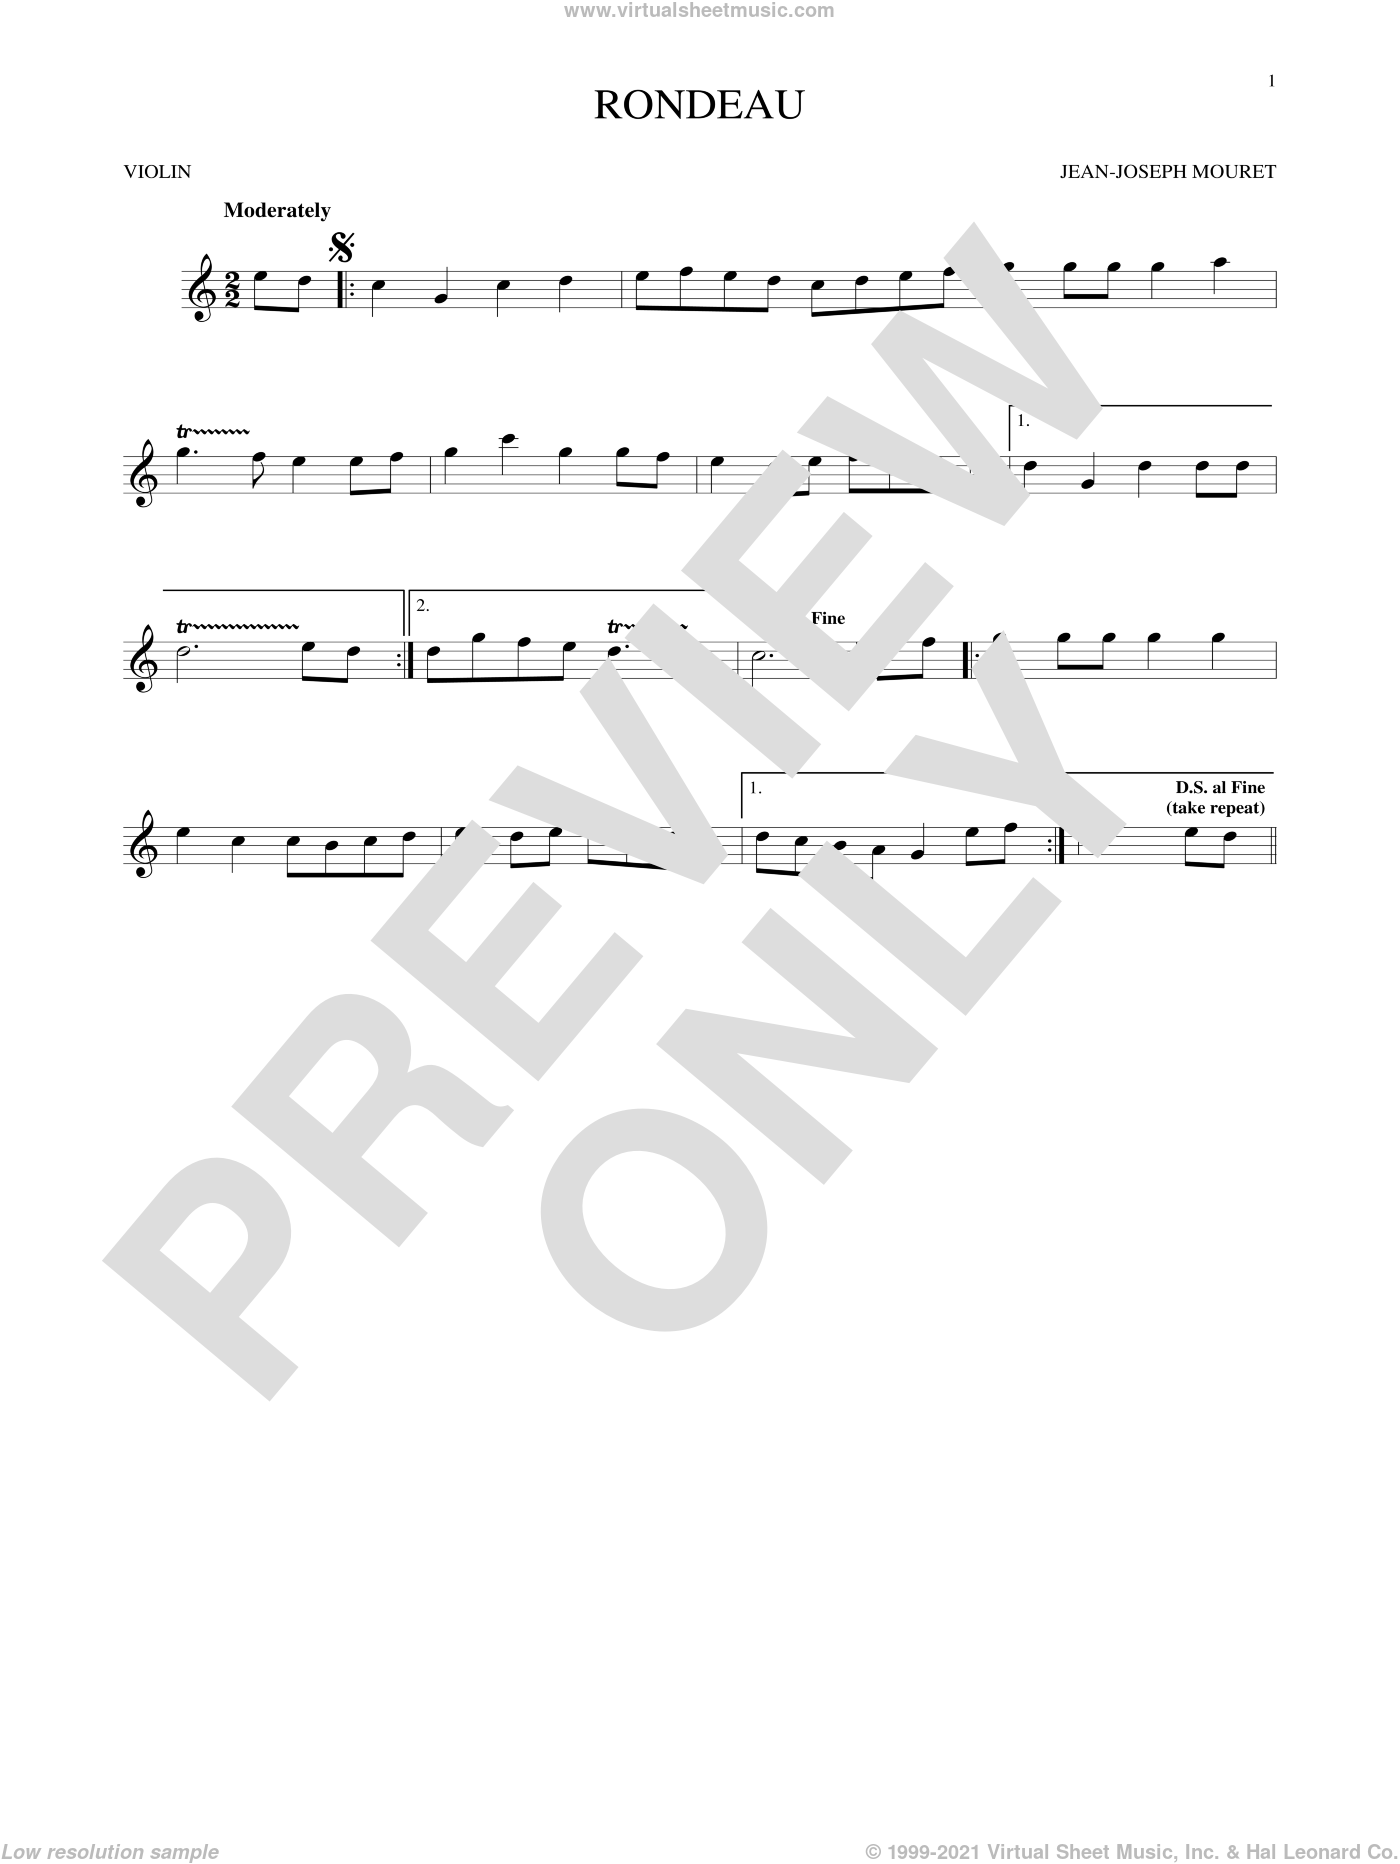 Fanfare Rondeau sheet music for violin solo by Jean-Joseph Mouret, classical score, intermediate skill level